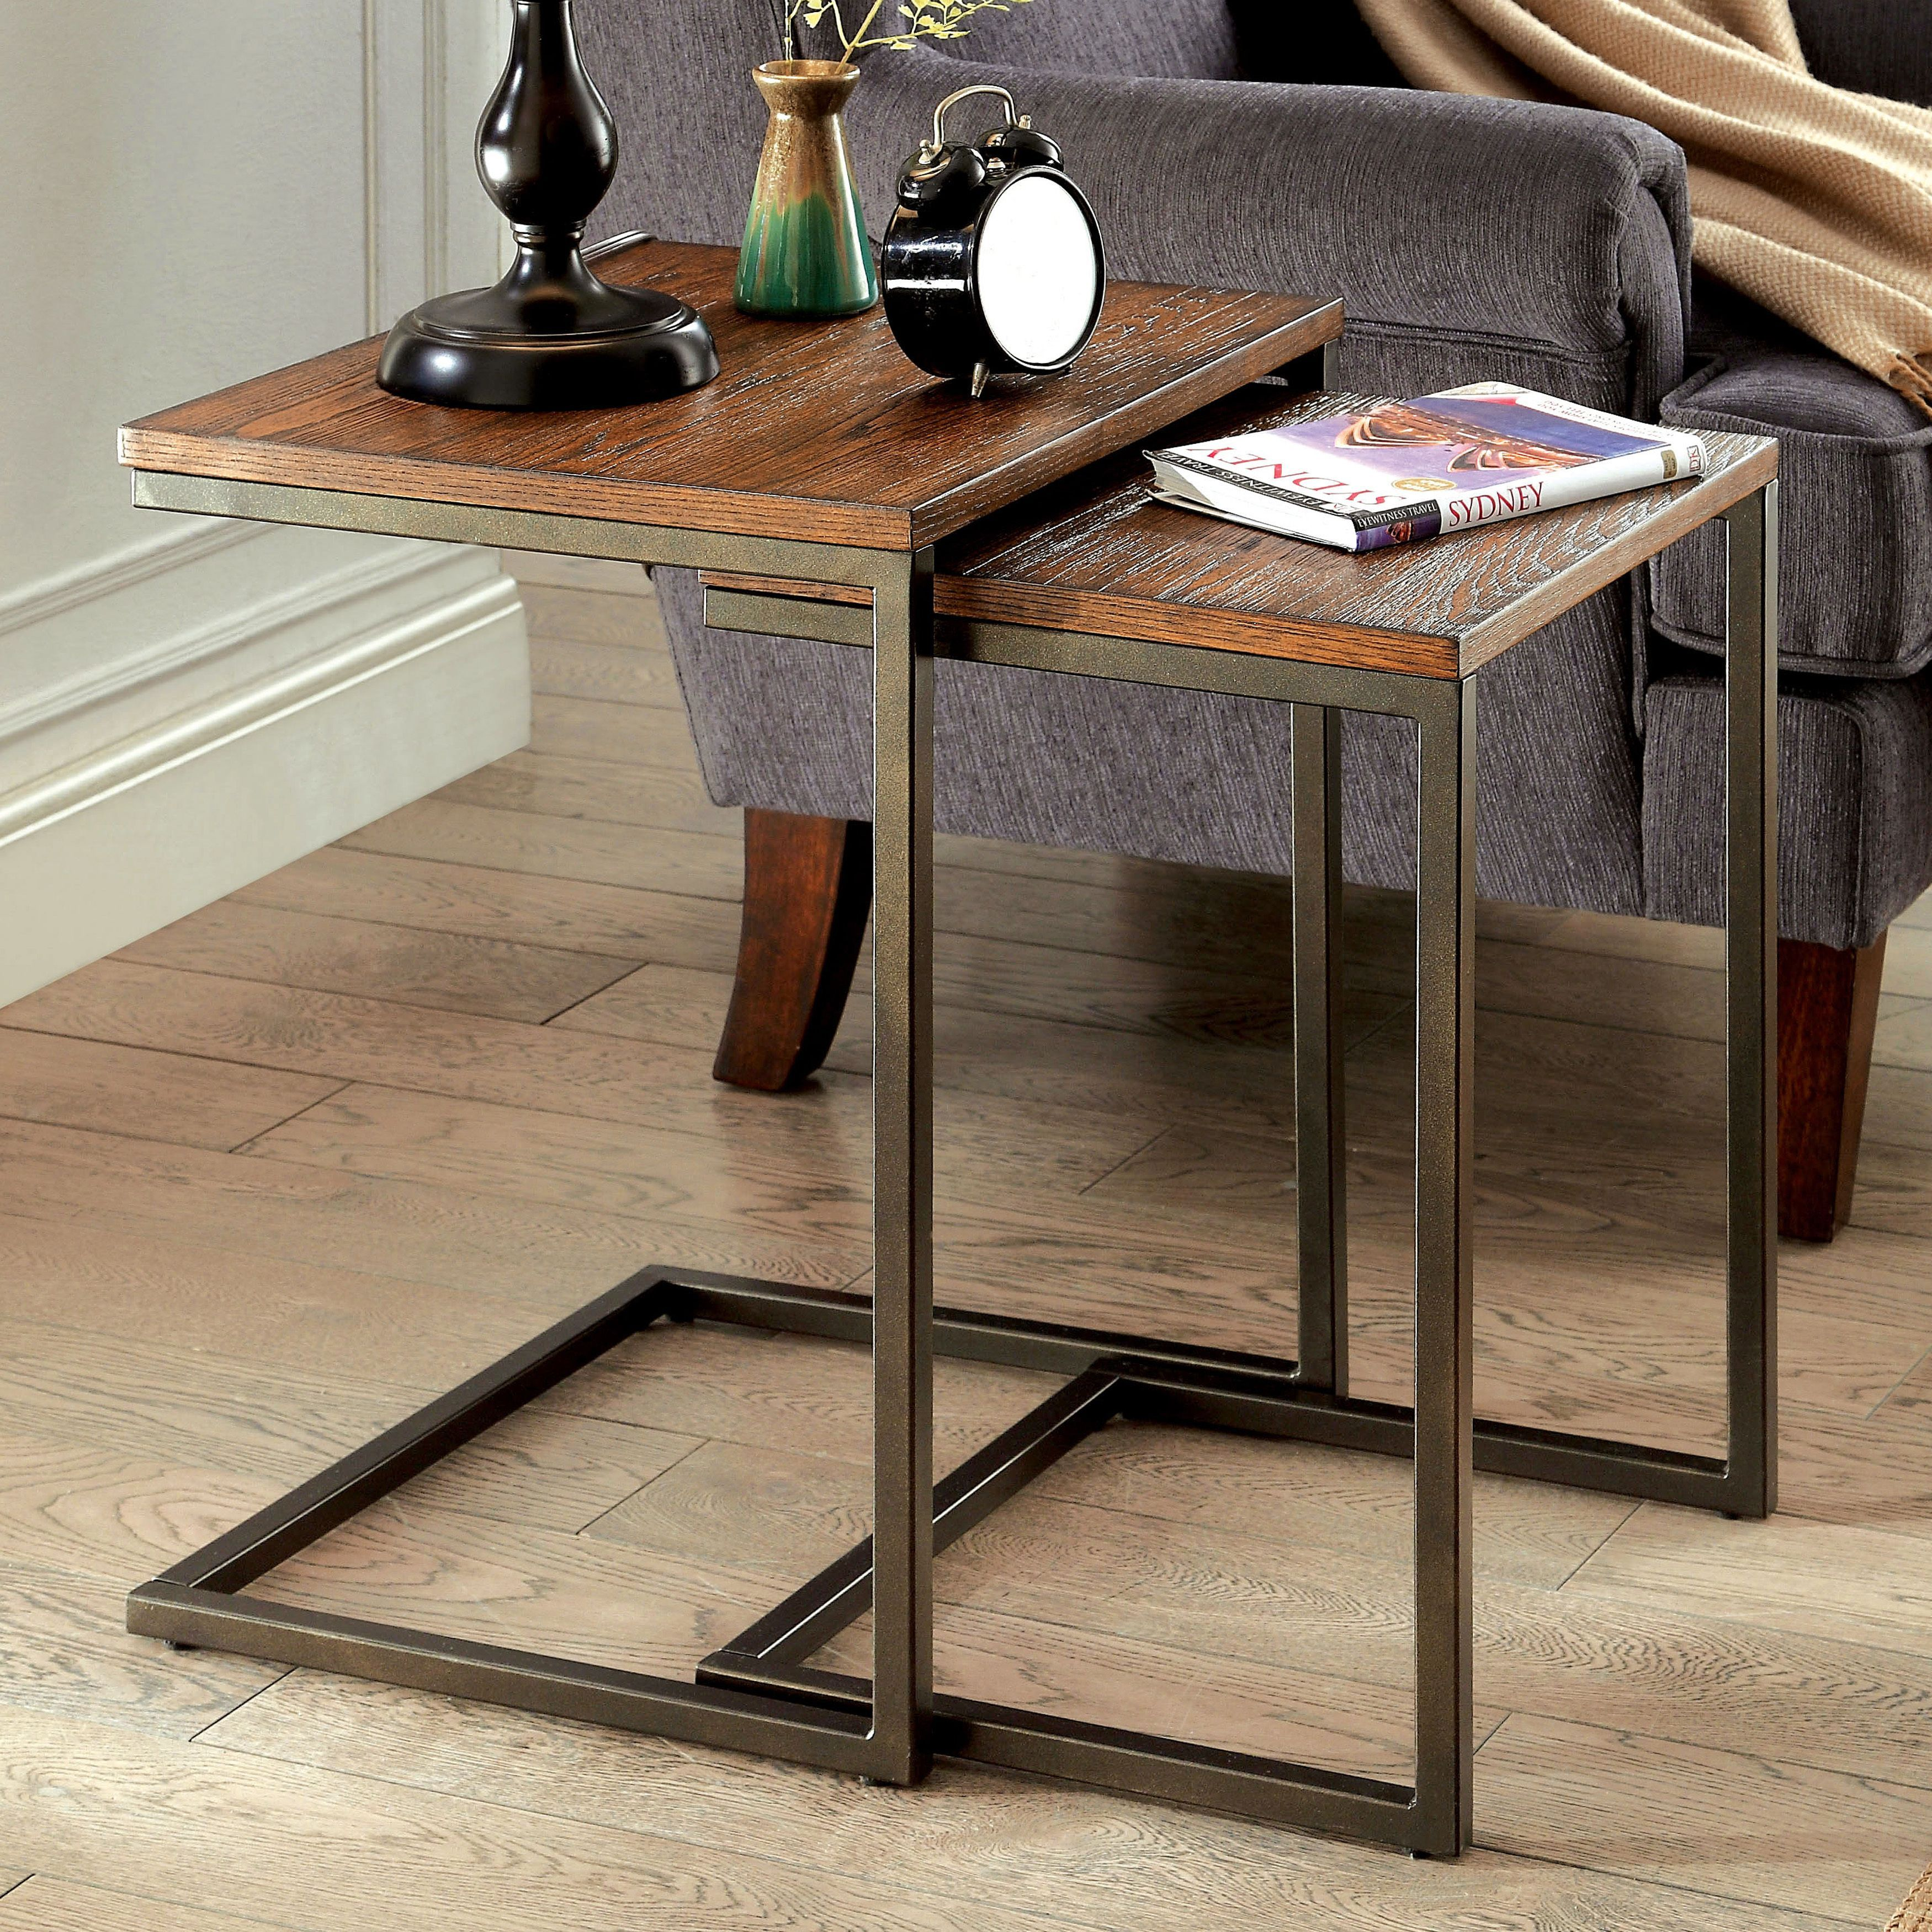 Exceptional Furniture Of America Dornell Industrial Style Nesting Table | Overstock.com  Shopping   The Best